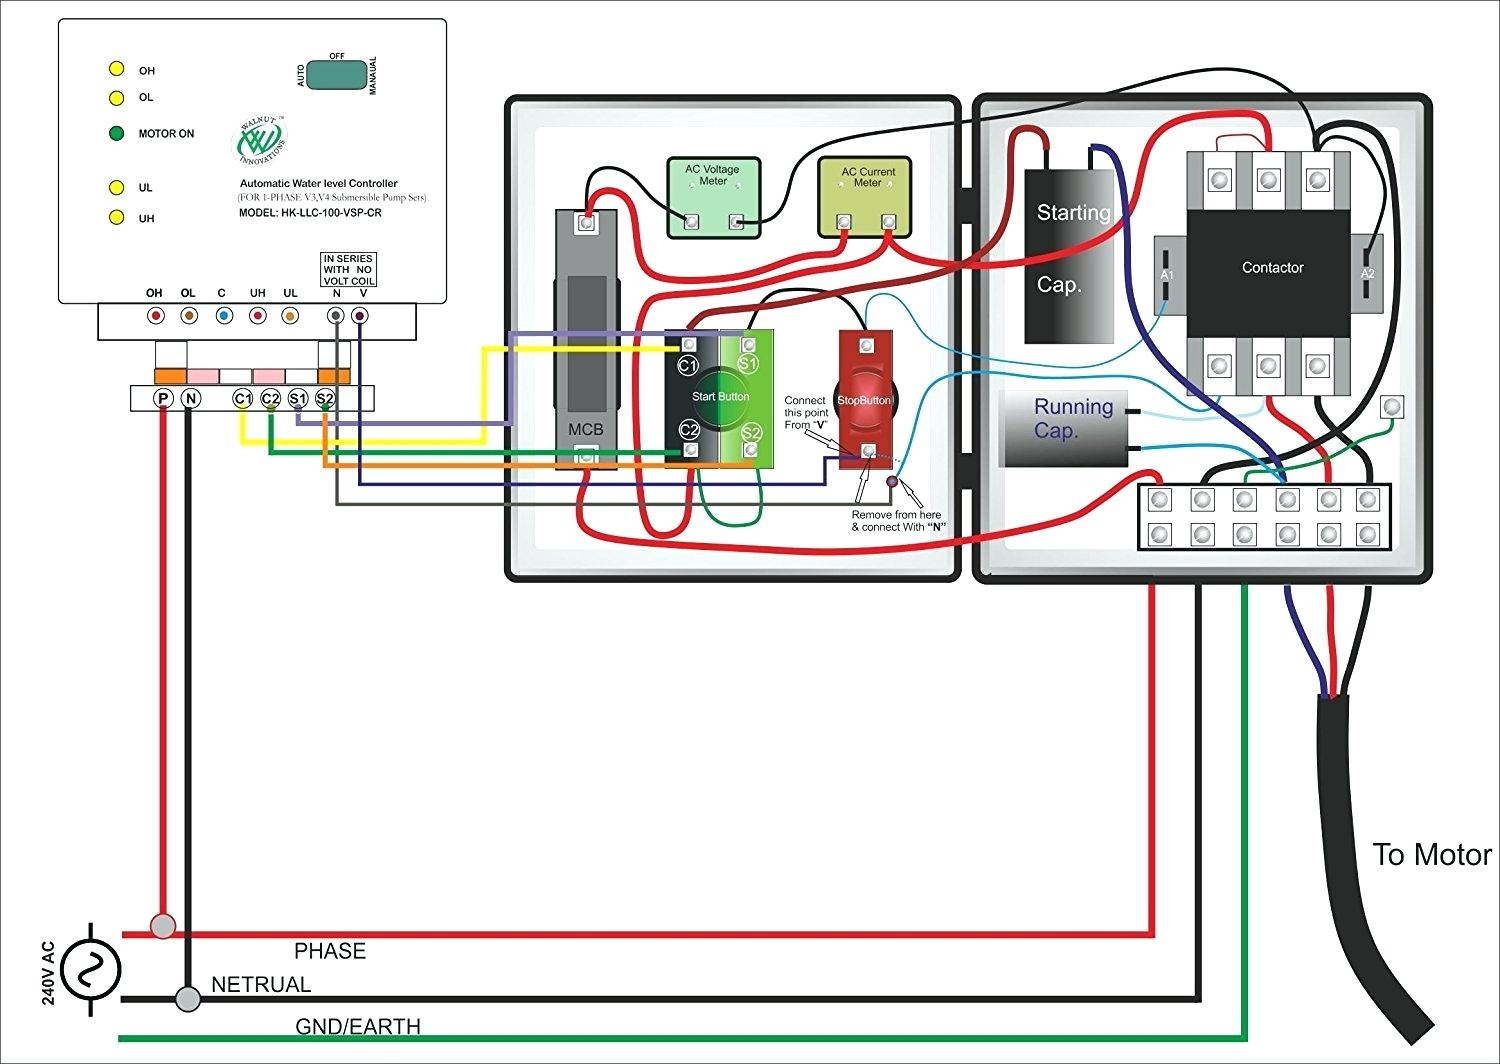 Single Phase Submersible Pump Starter Wiring Diagram 3 Wire Well - 3 Wire Well Pump Wiring Diagram